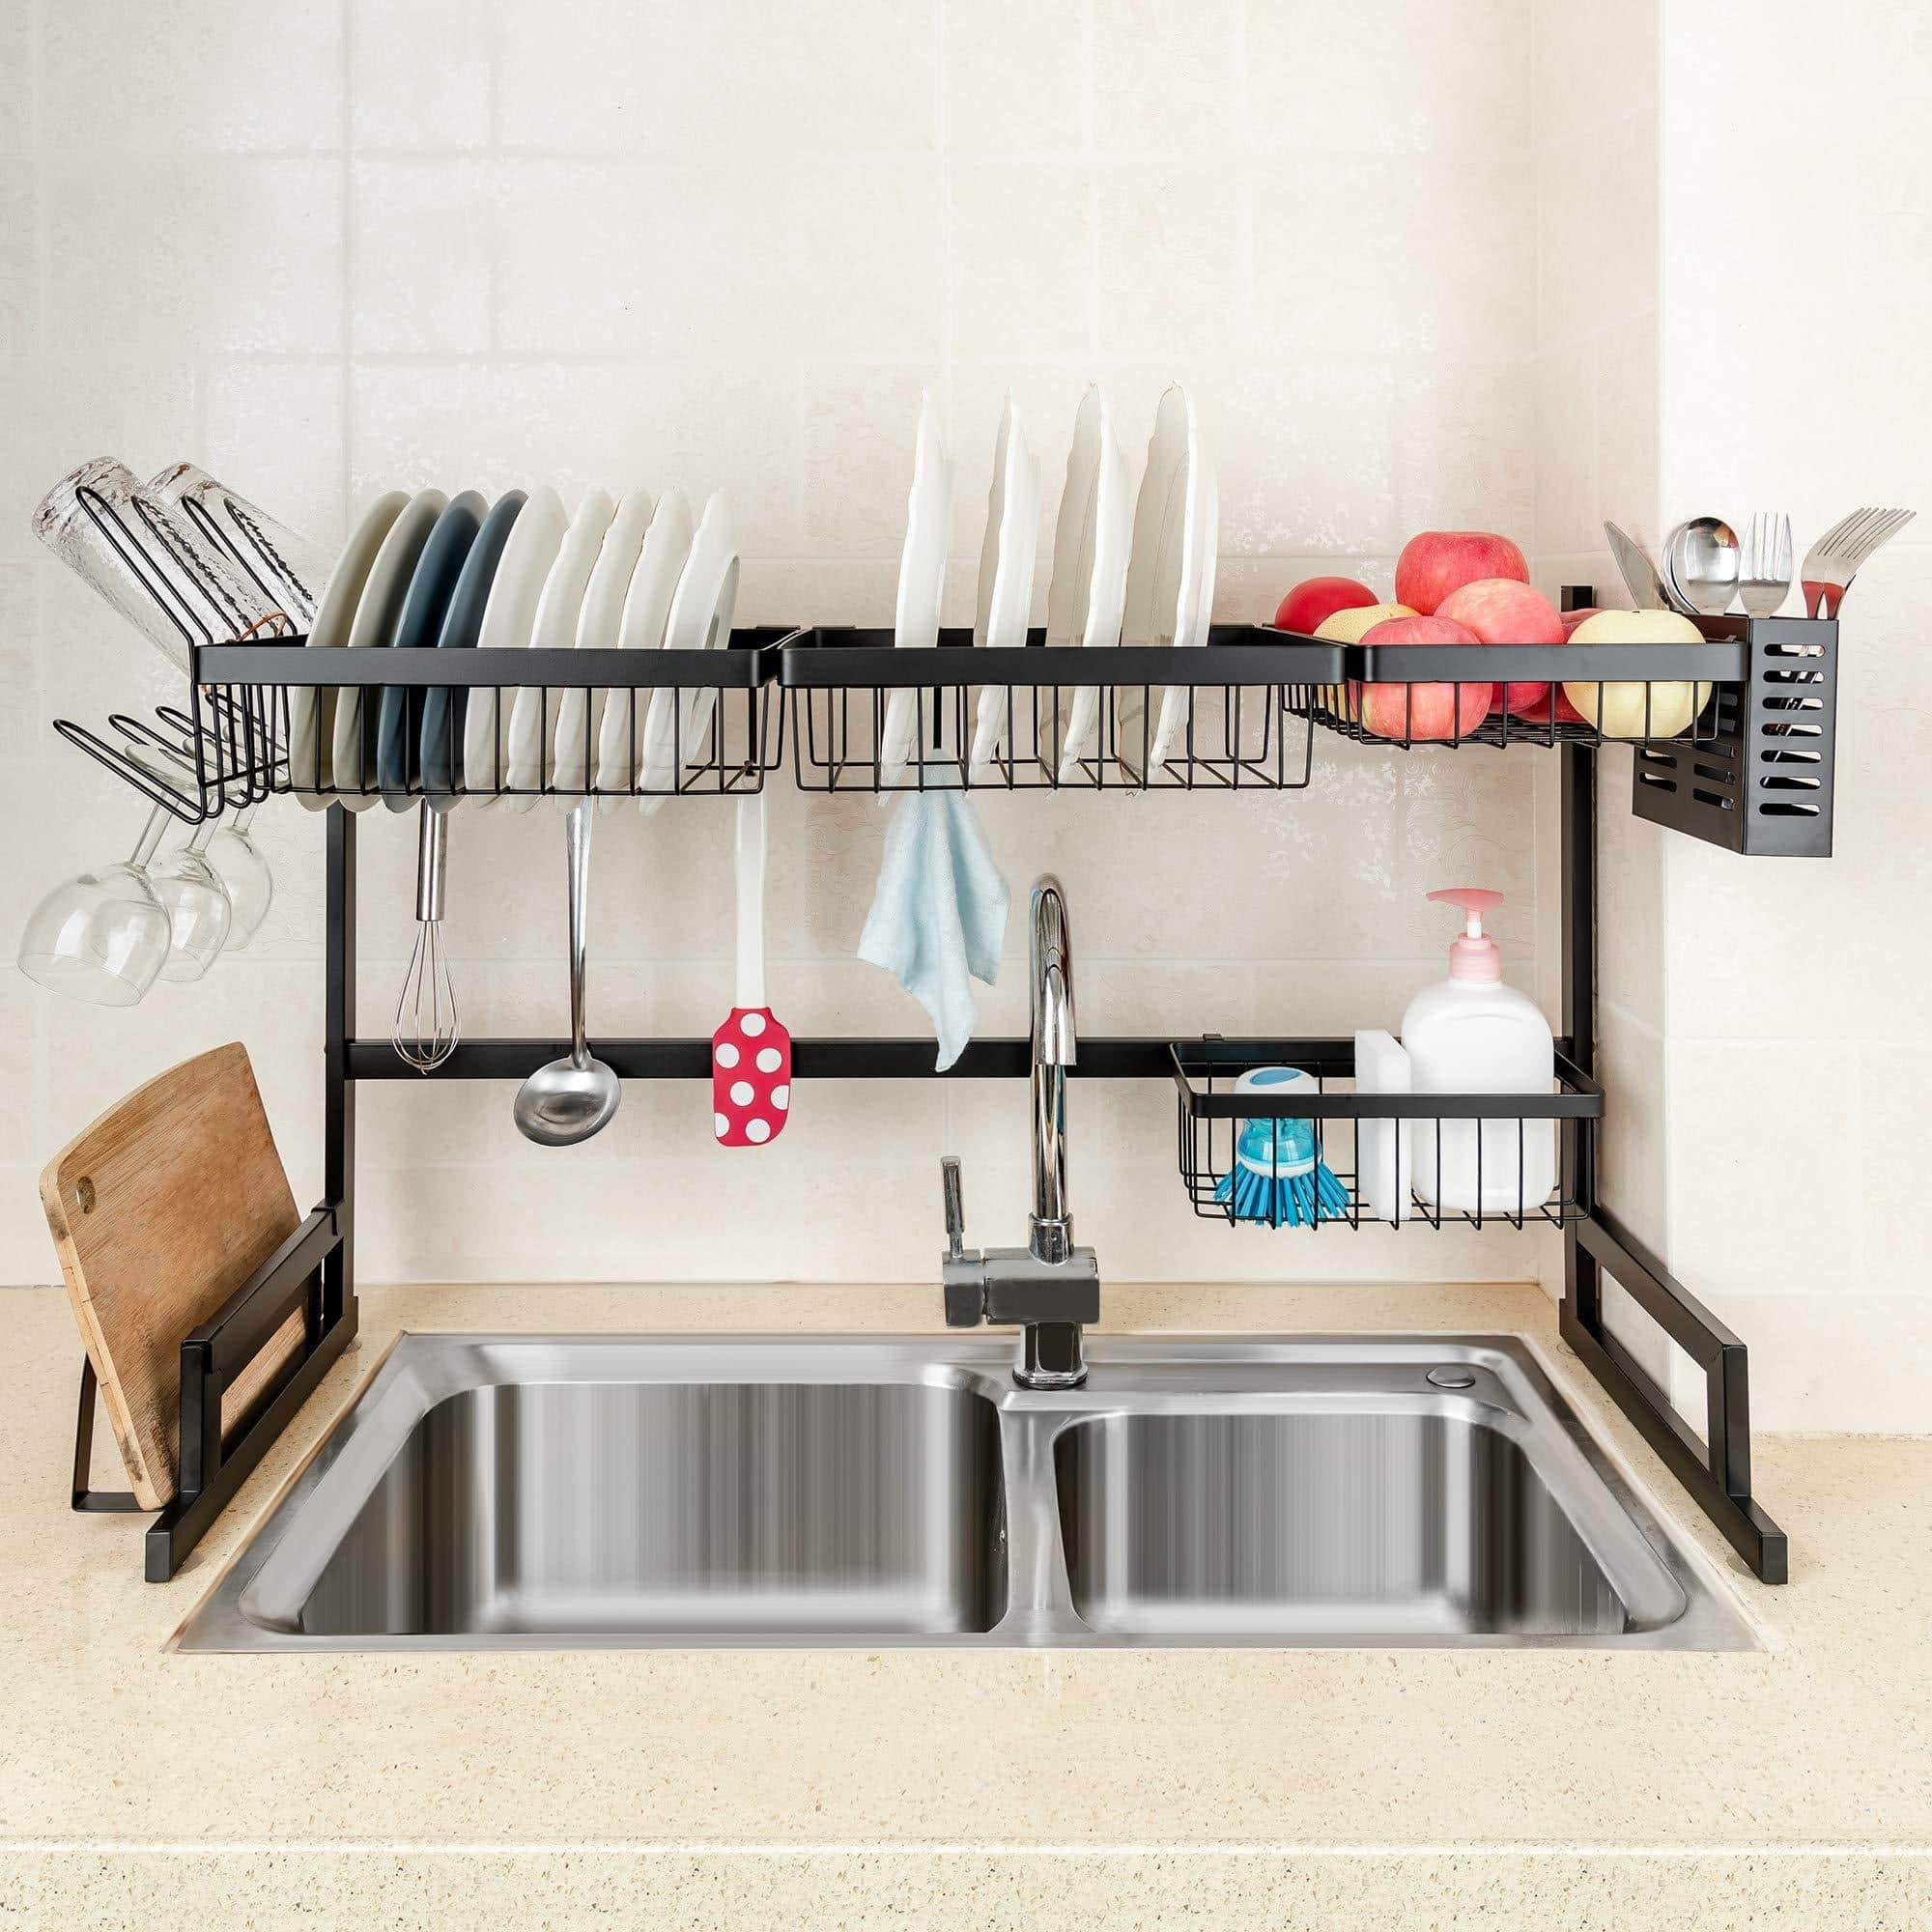 Best seller  ipegtop over the sink stainless steel dish drying rack large dish drainers for kitchen double sink dishes utensils glasses draining shelf storage counter organizer cutlery holder black